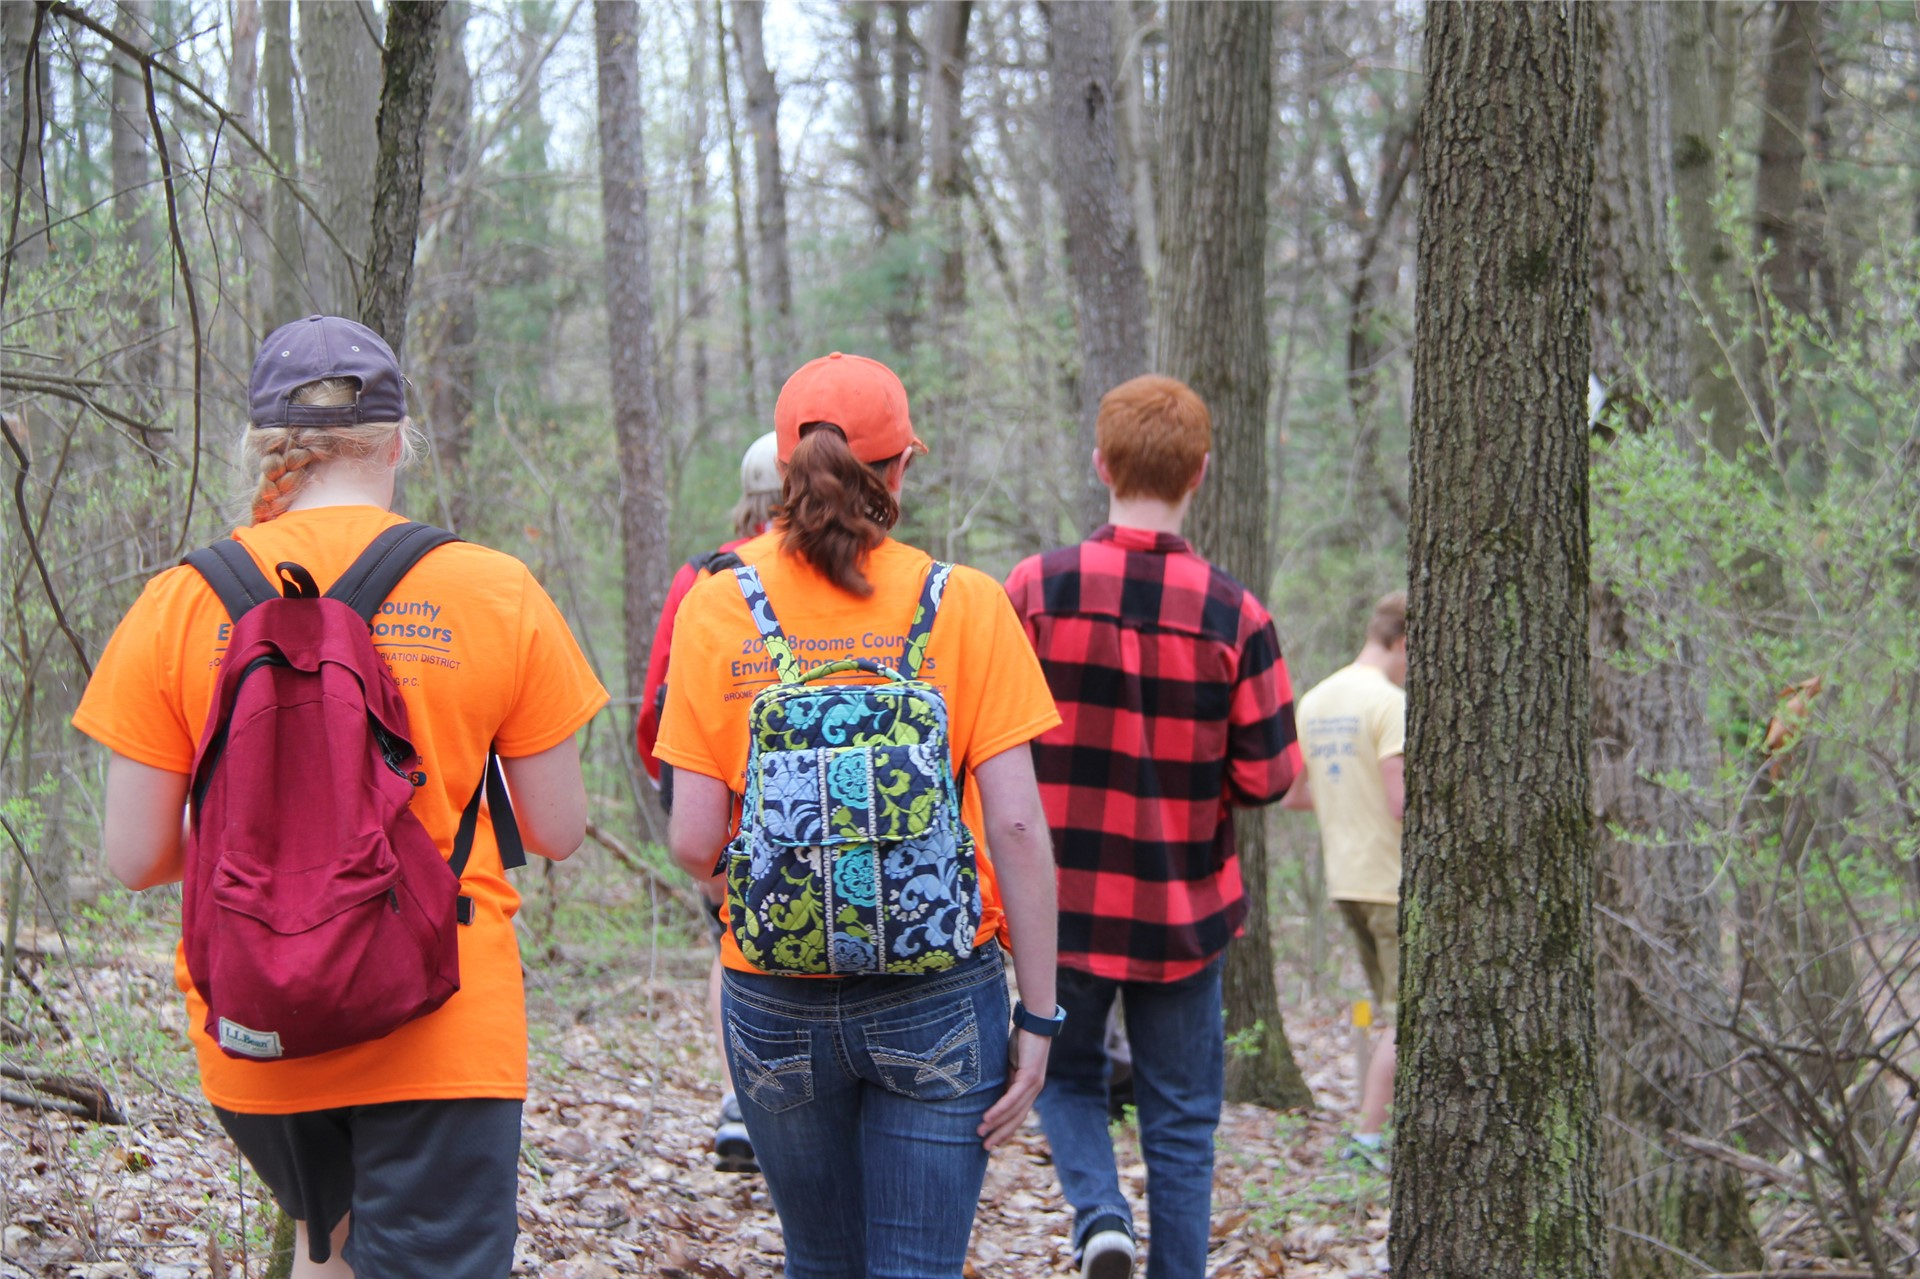 students walking in wooded area